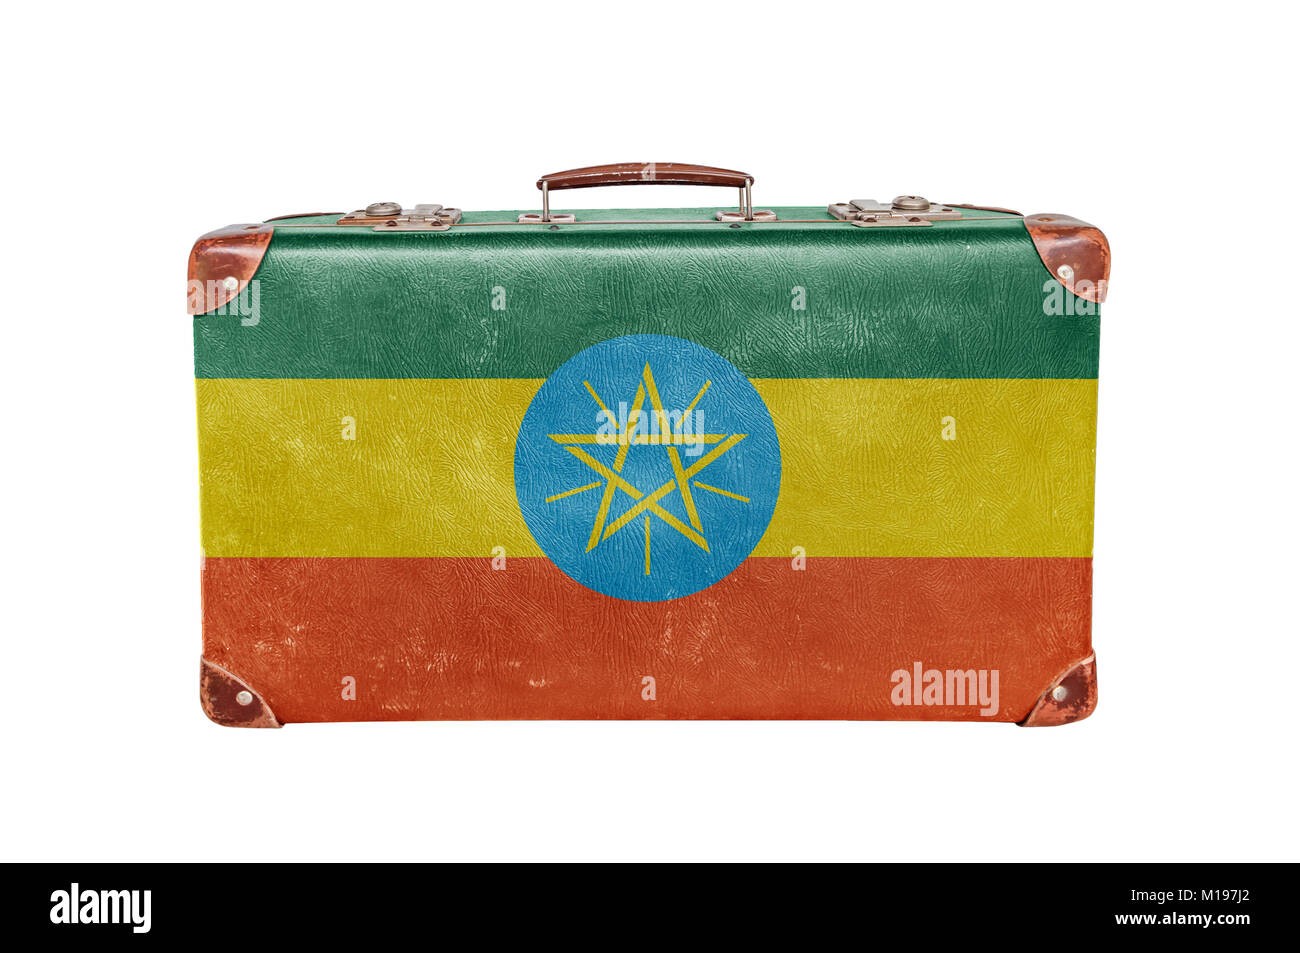 Vintage suitcase with Ethiopia flag isolated on white background - Stock Image